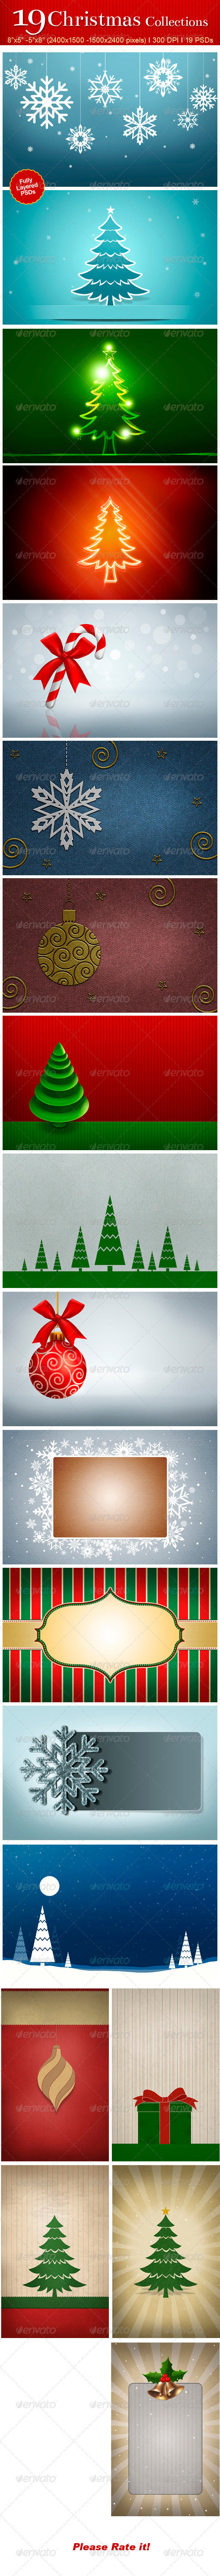 19 Christmas Collections - Miscellaneous Backgrounds